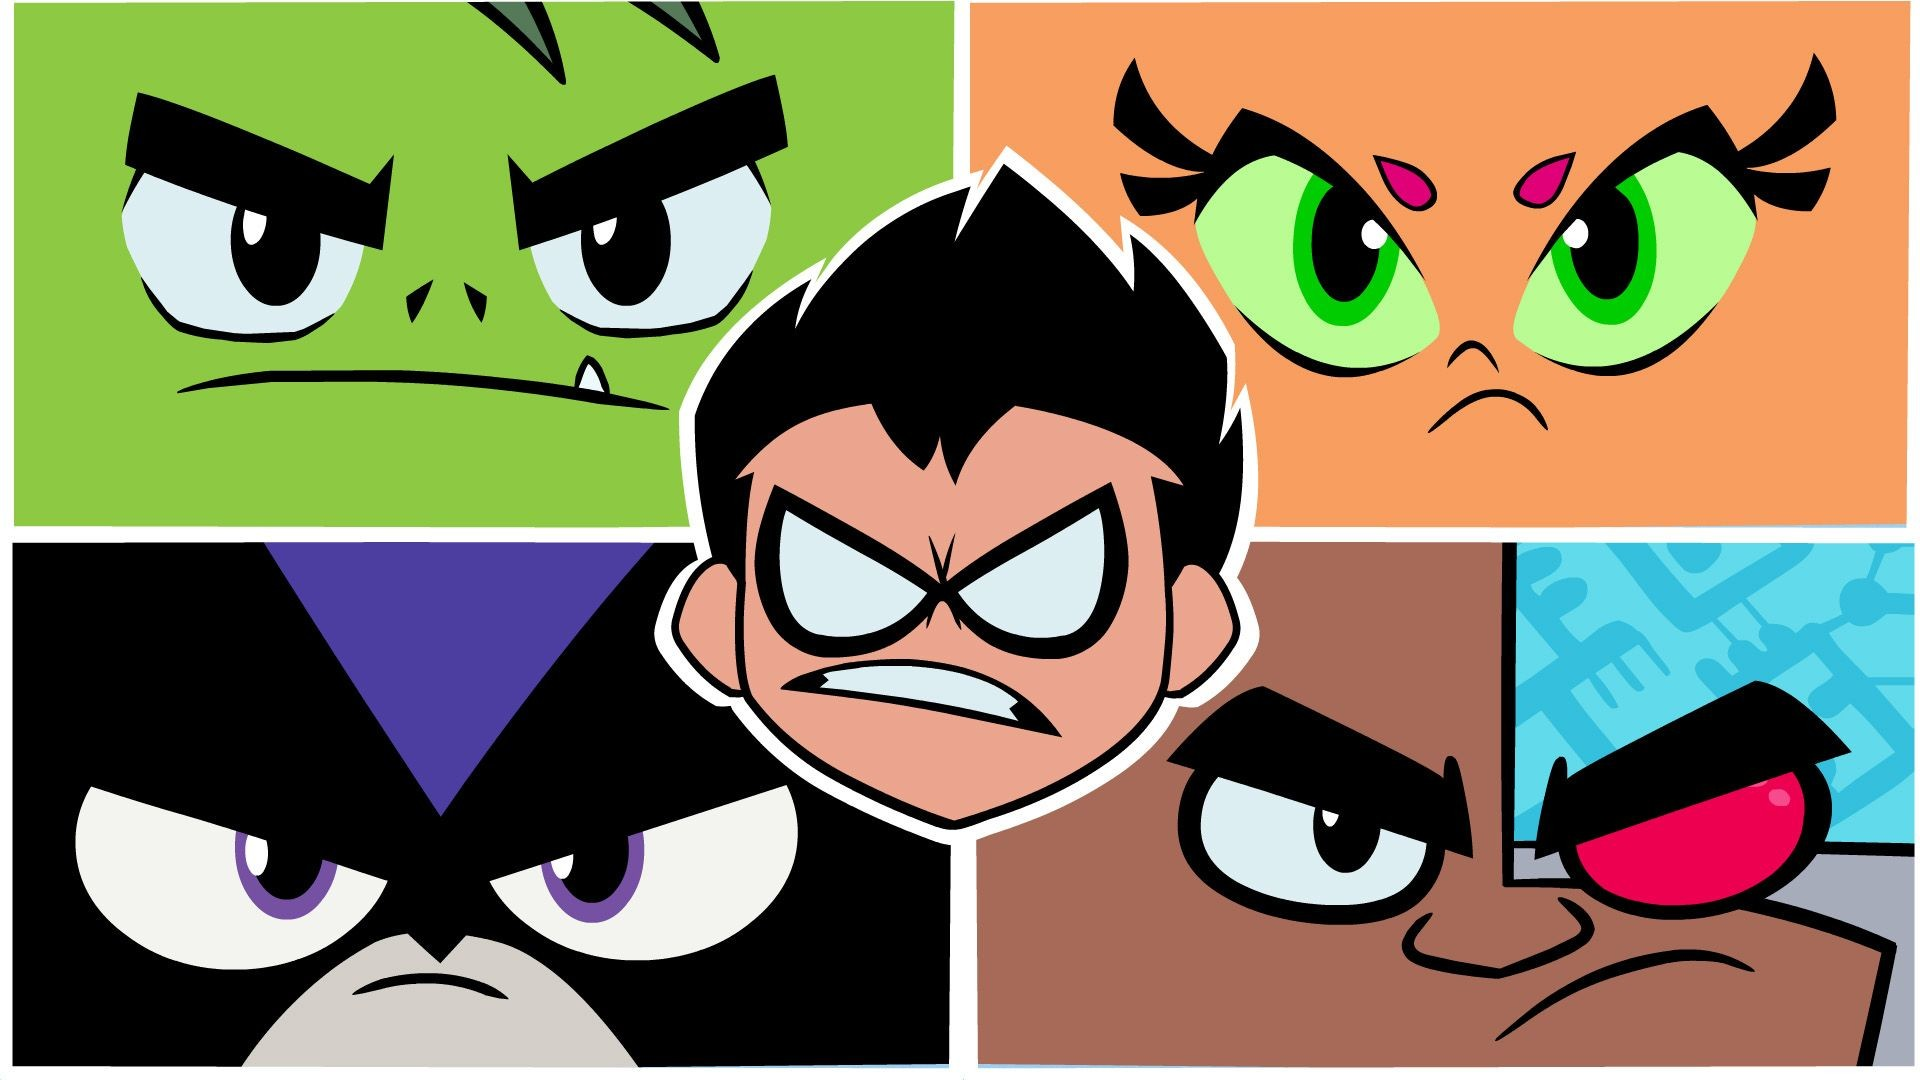 Teen Titans Go HD Wallpapers Backgrounds Wallpaper   HD Wallpapers    Pinterest   Teen titans, Hd wallpaper and Wallpaper